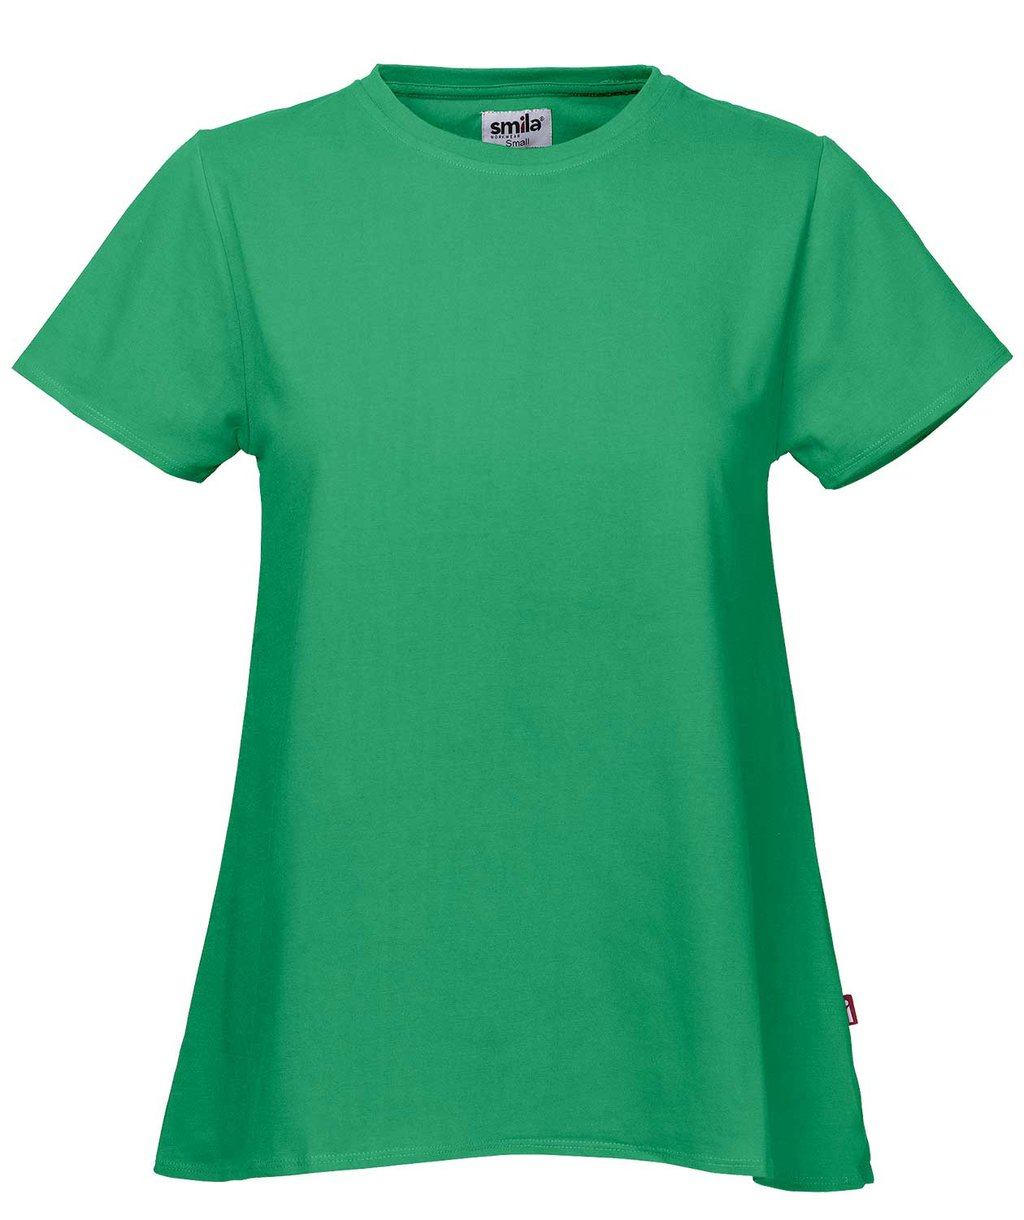 Smila Workwear Hilja women's T-shirt, Green